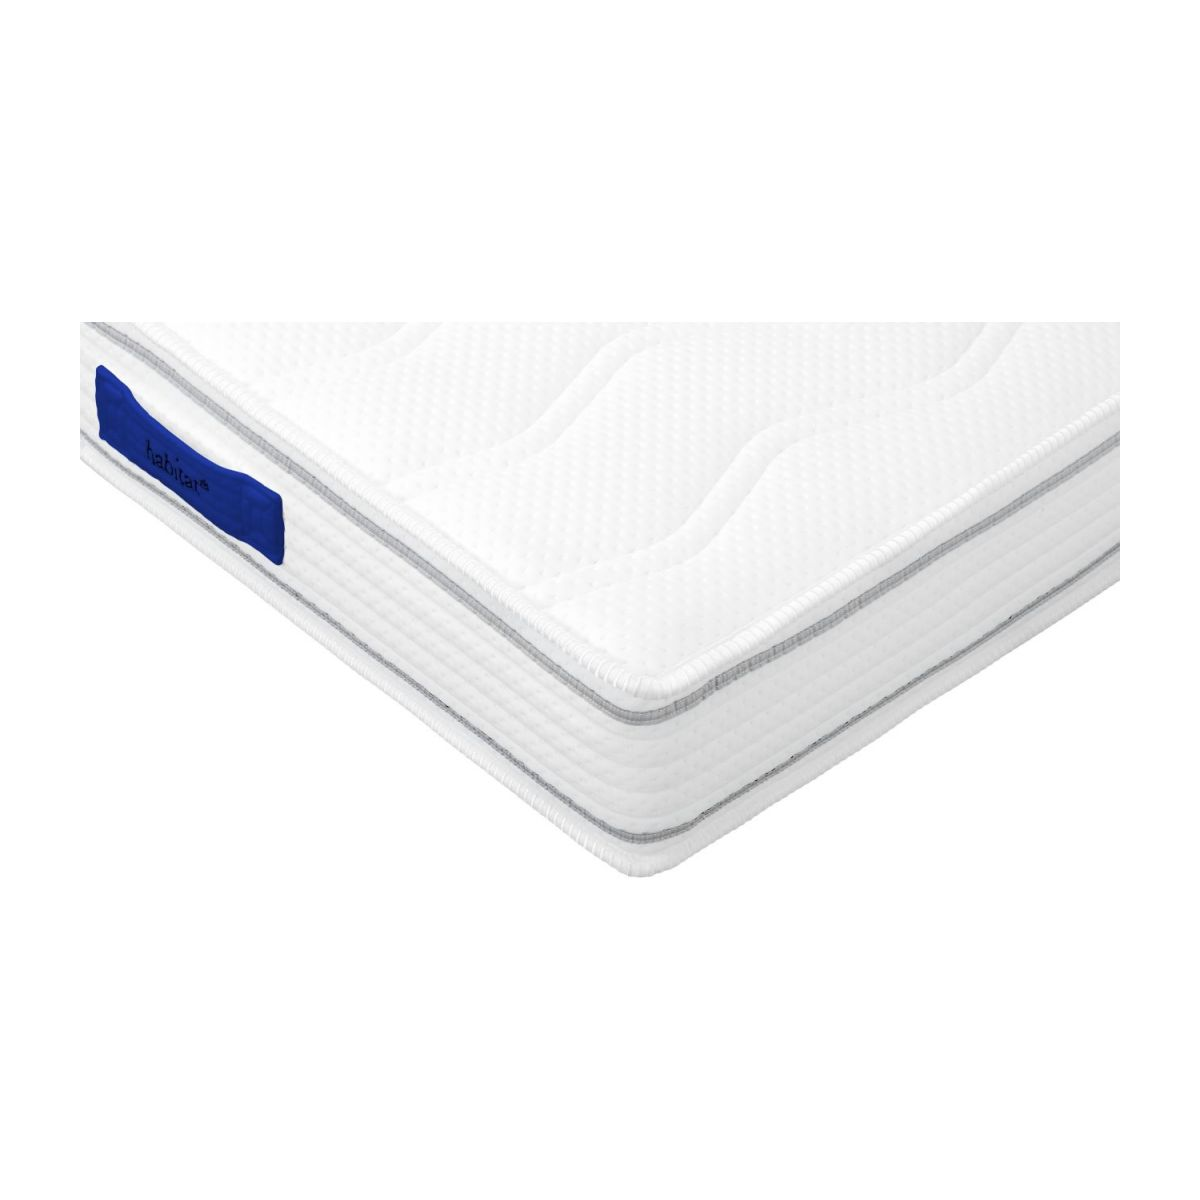 Spring mattress, width 21 cm, 80x200cm - firm support n°4